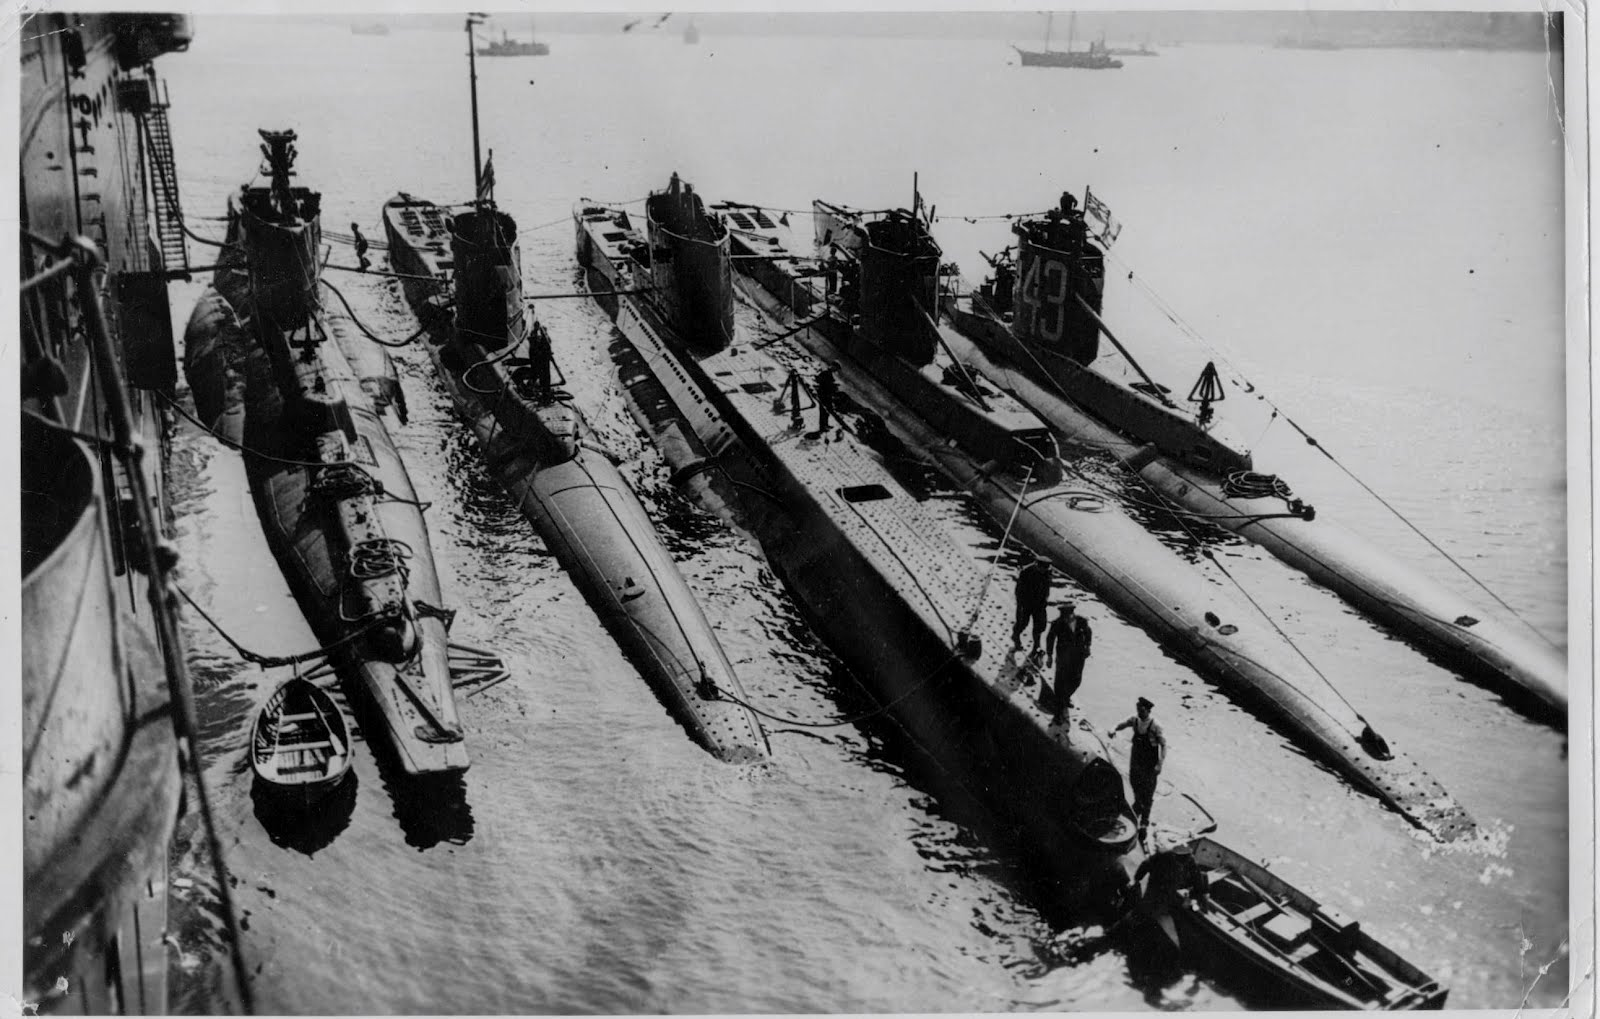 submarines in world war ii essay Although the difference, in the wwi technology and wwii's were monstrous, in world war ii the submarines were much more advance according to americanhistoryedu, world war ii submarines had a bigger hull so the submarines could go deep in the wa.